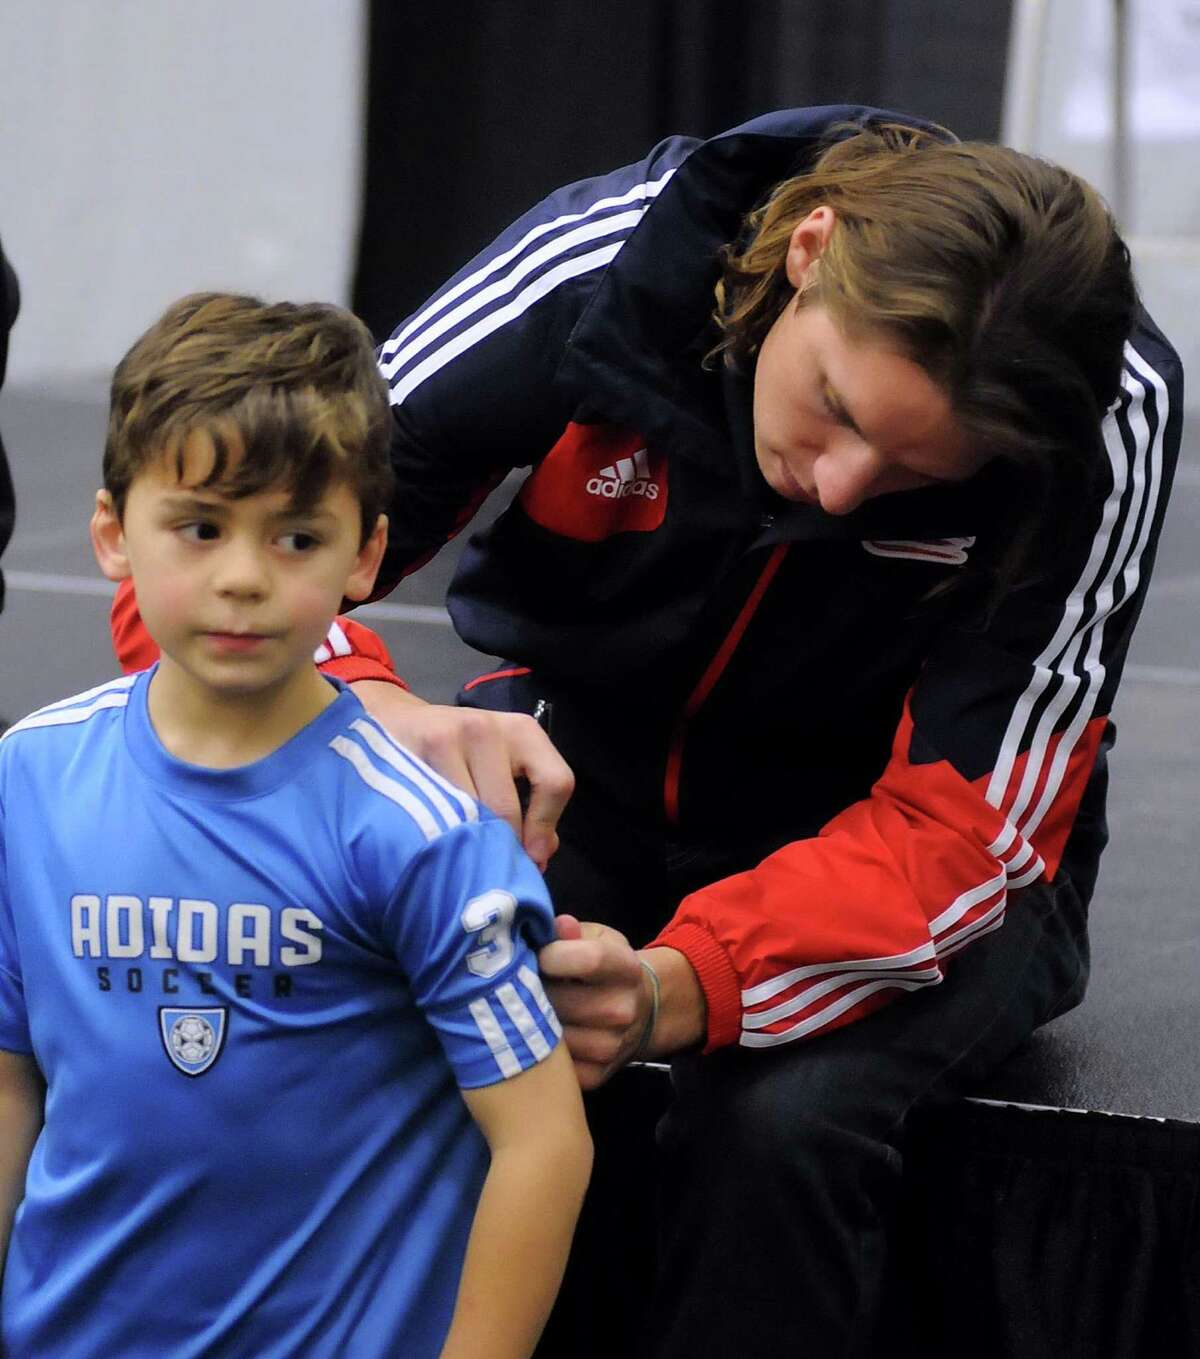 American soccer player, Bobby Shuttleworh, signs the back of eight-year old Nicholas Psichopaidas' shirt during the Soccer Night in Newtown on Monday Jan. 7, 2013.